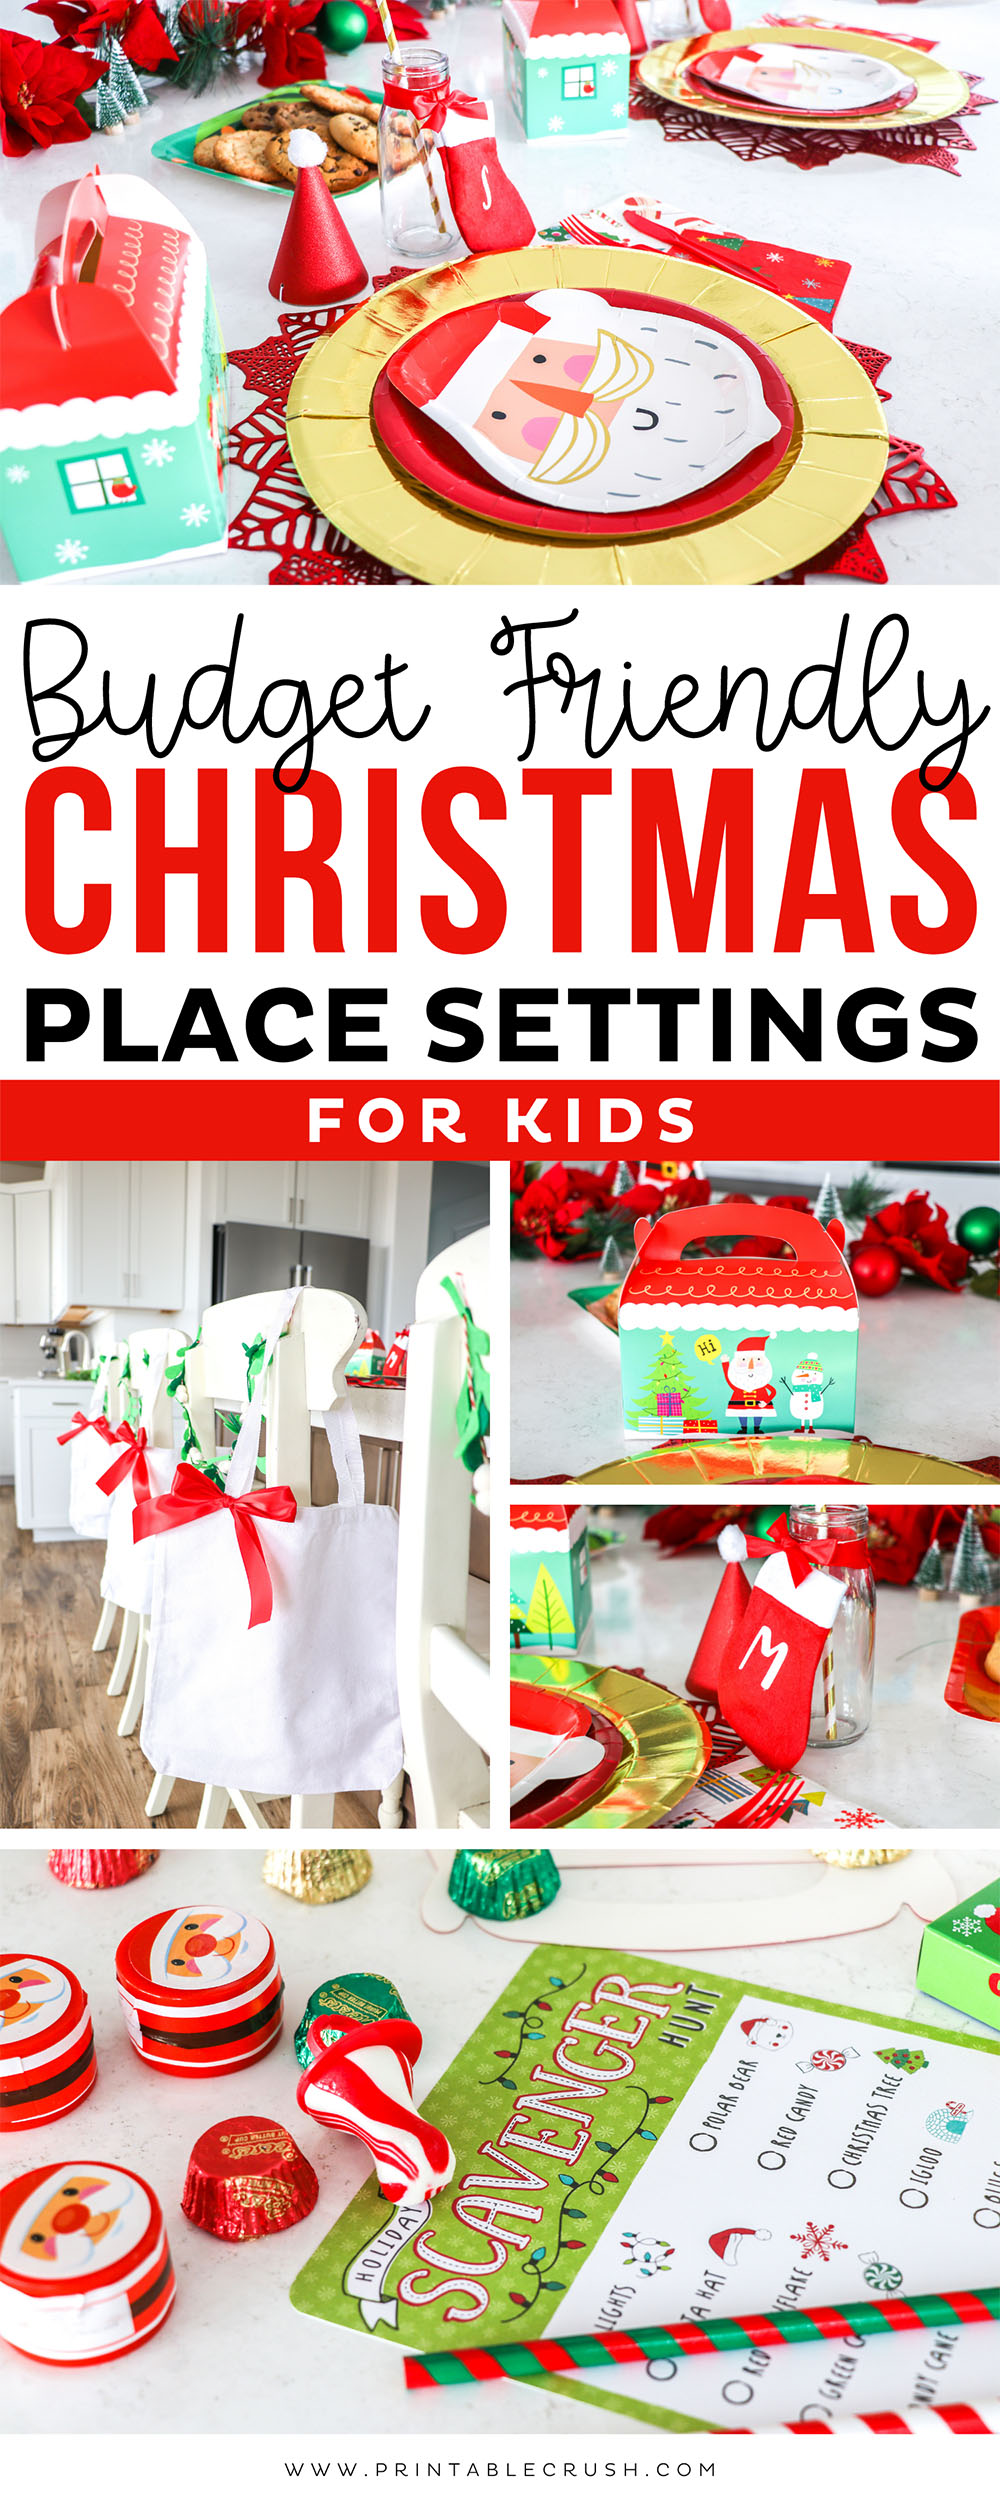 Budget Friendly Christmas Place Settings for Kids - Christmas Place Settings - Holiday Place Settings - Christmas Party Ideas